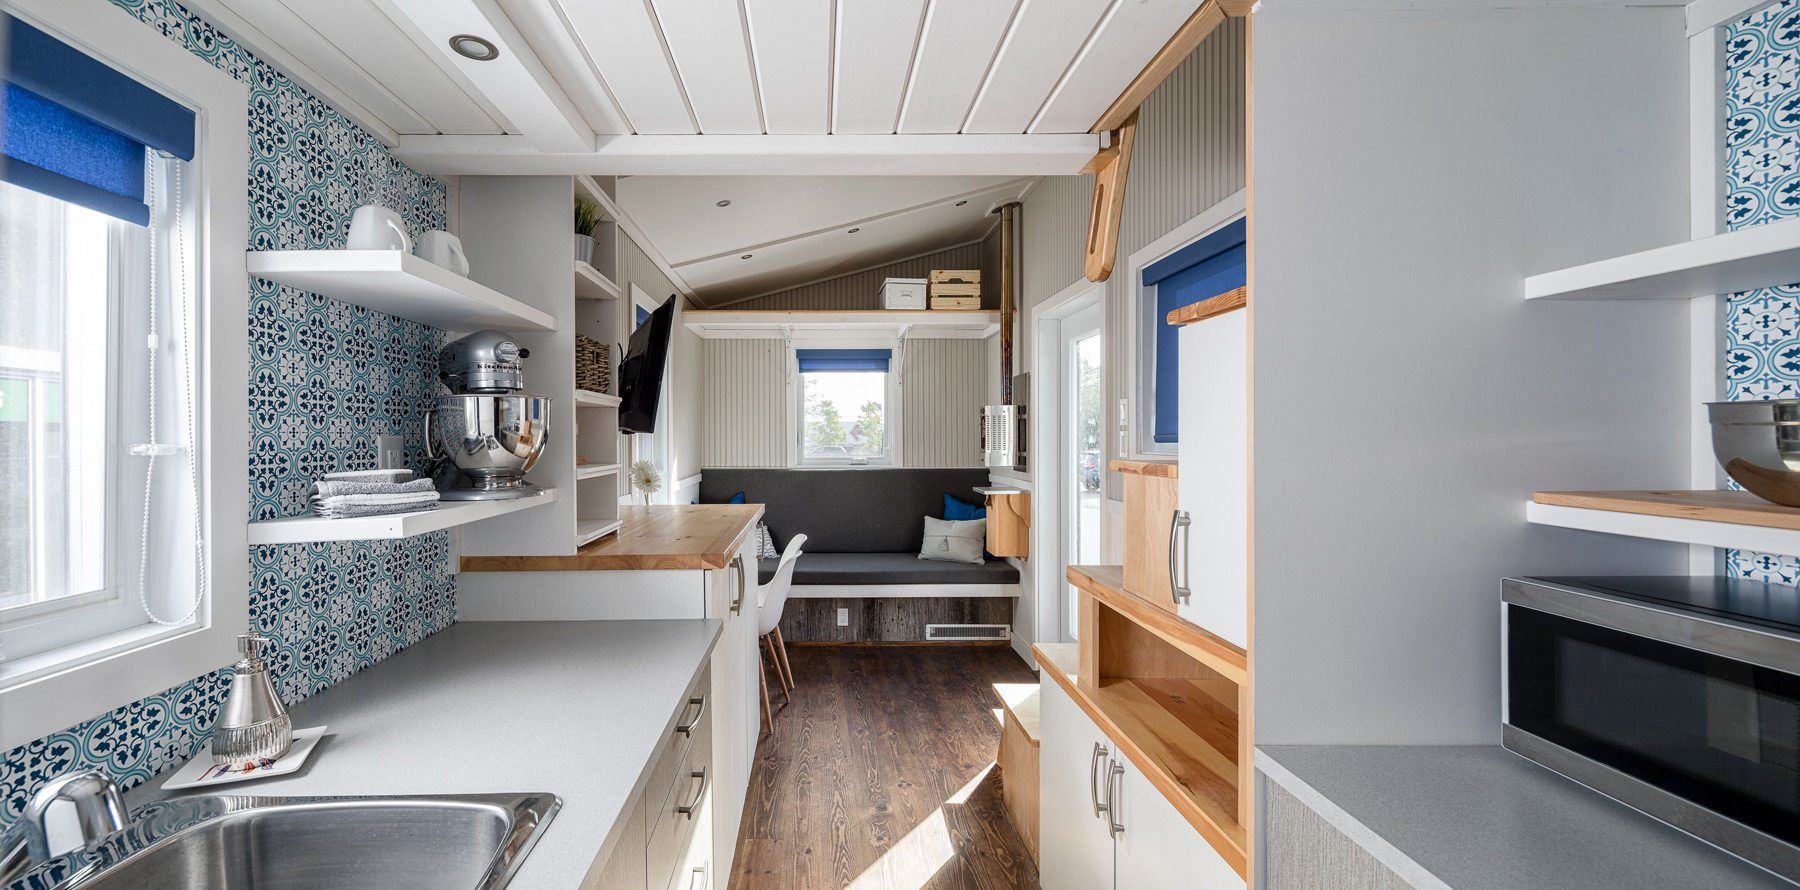 Tiny Houses: They are the new zeitgeist. Are you ready to move in?